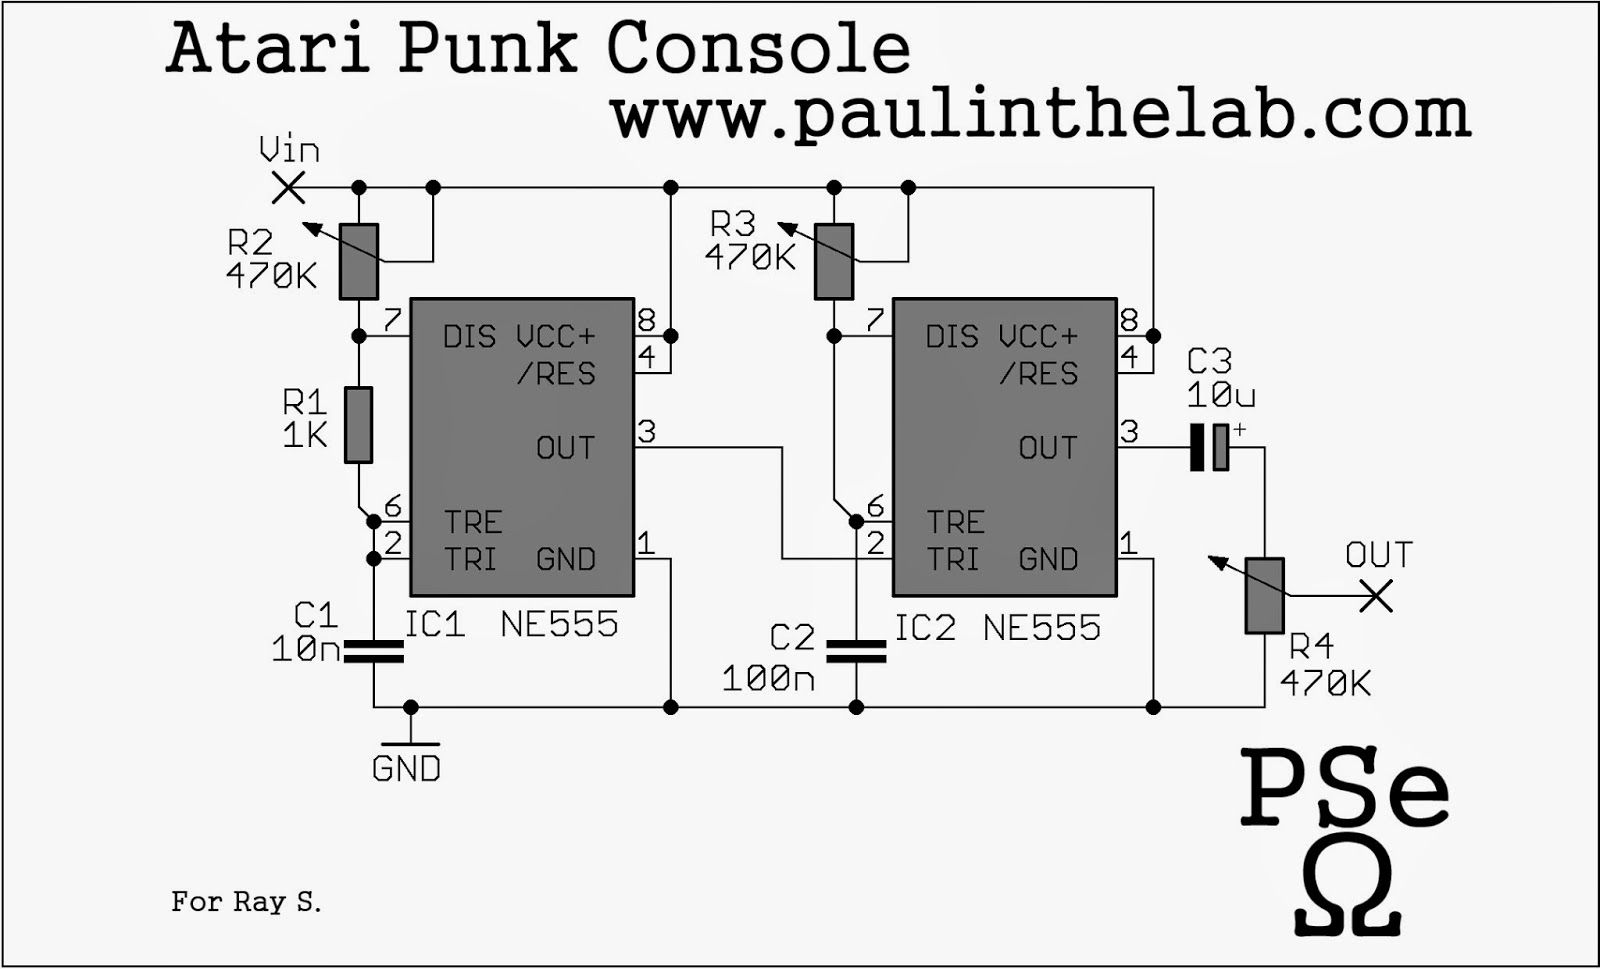 Atari Punk Console Using Two 555 Chips Arduinoscratch4arduino Circuit Board Artwork Stripboard And Breadboard Layout